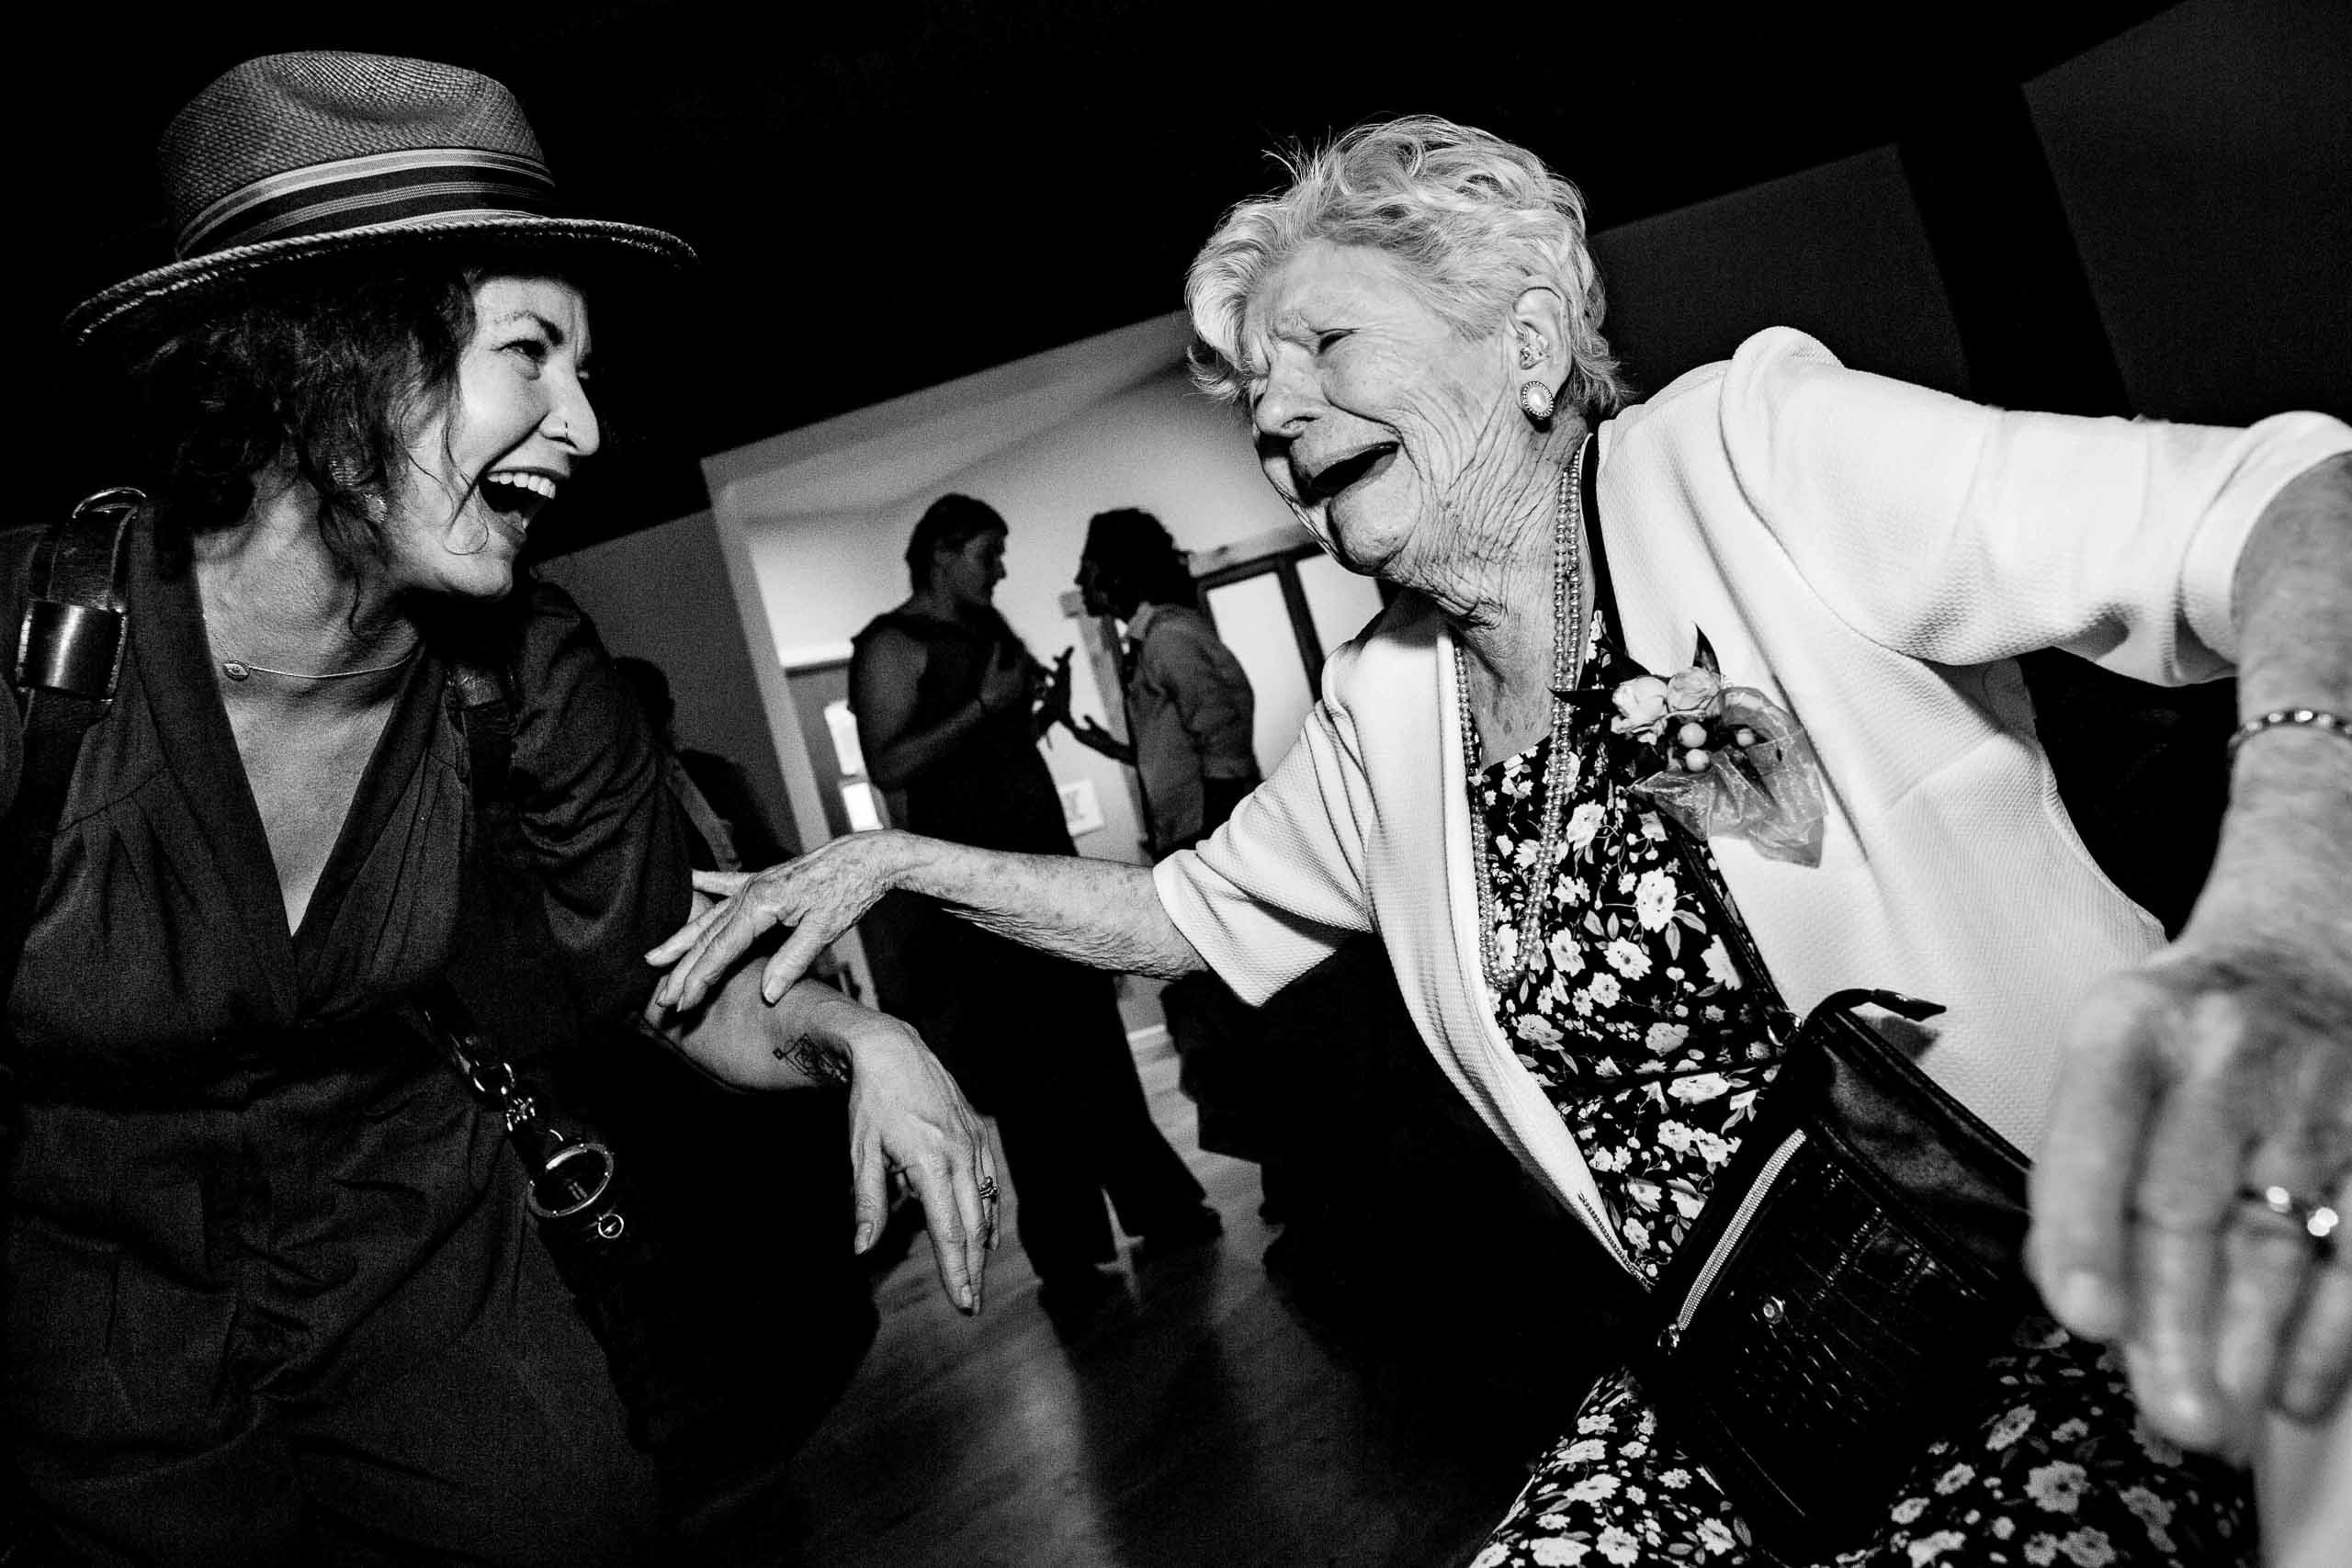 Tree WoodSmith laughing with grandma at wedding josandtree